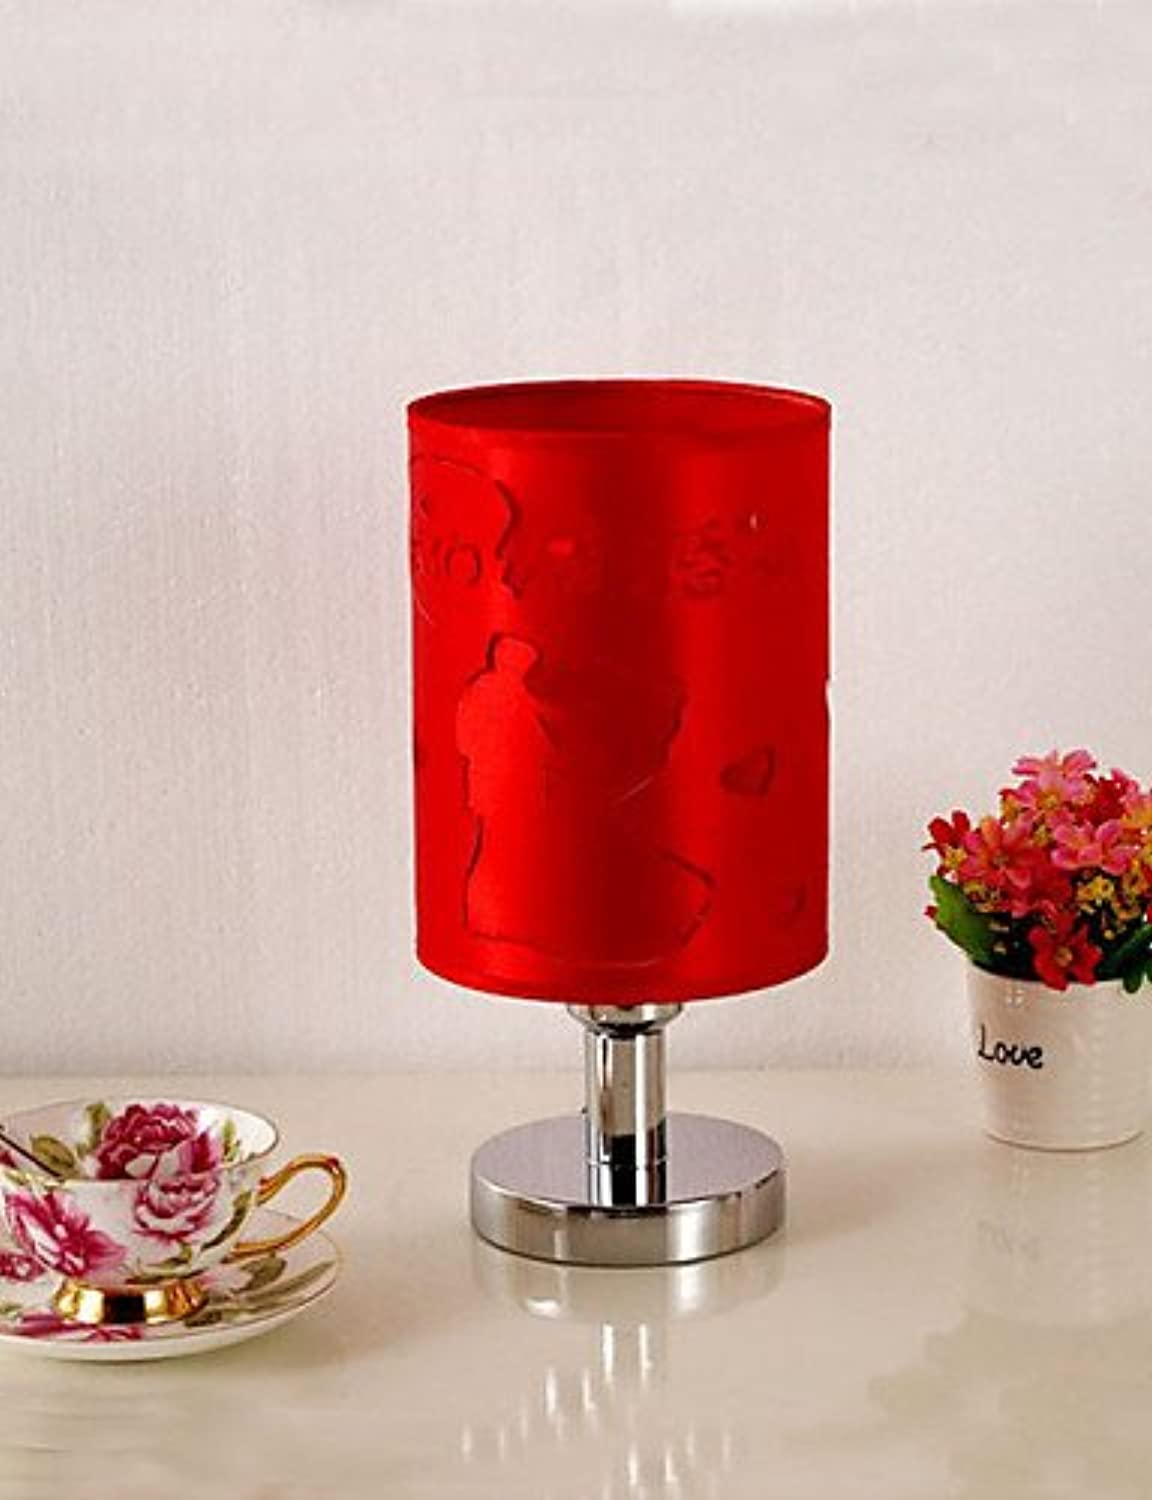 LPZSQ Eine Studie der Gewebe Dimmbare rot Wedding Celebration Lampe, warmes Wei-220-240V